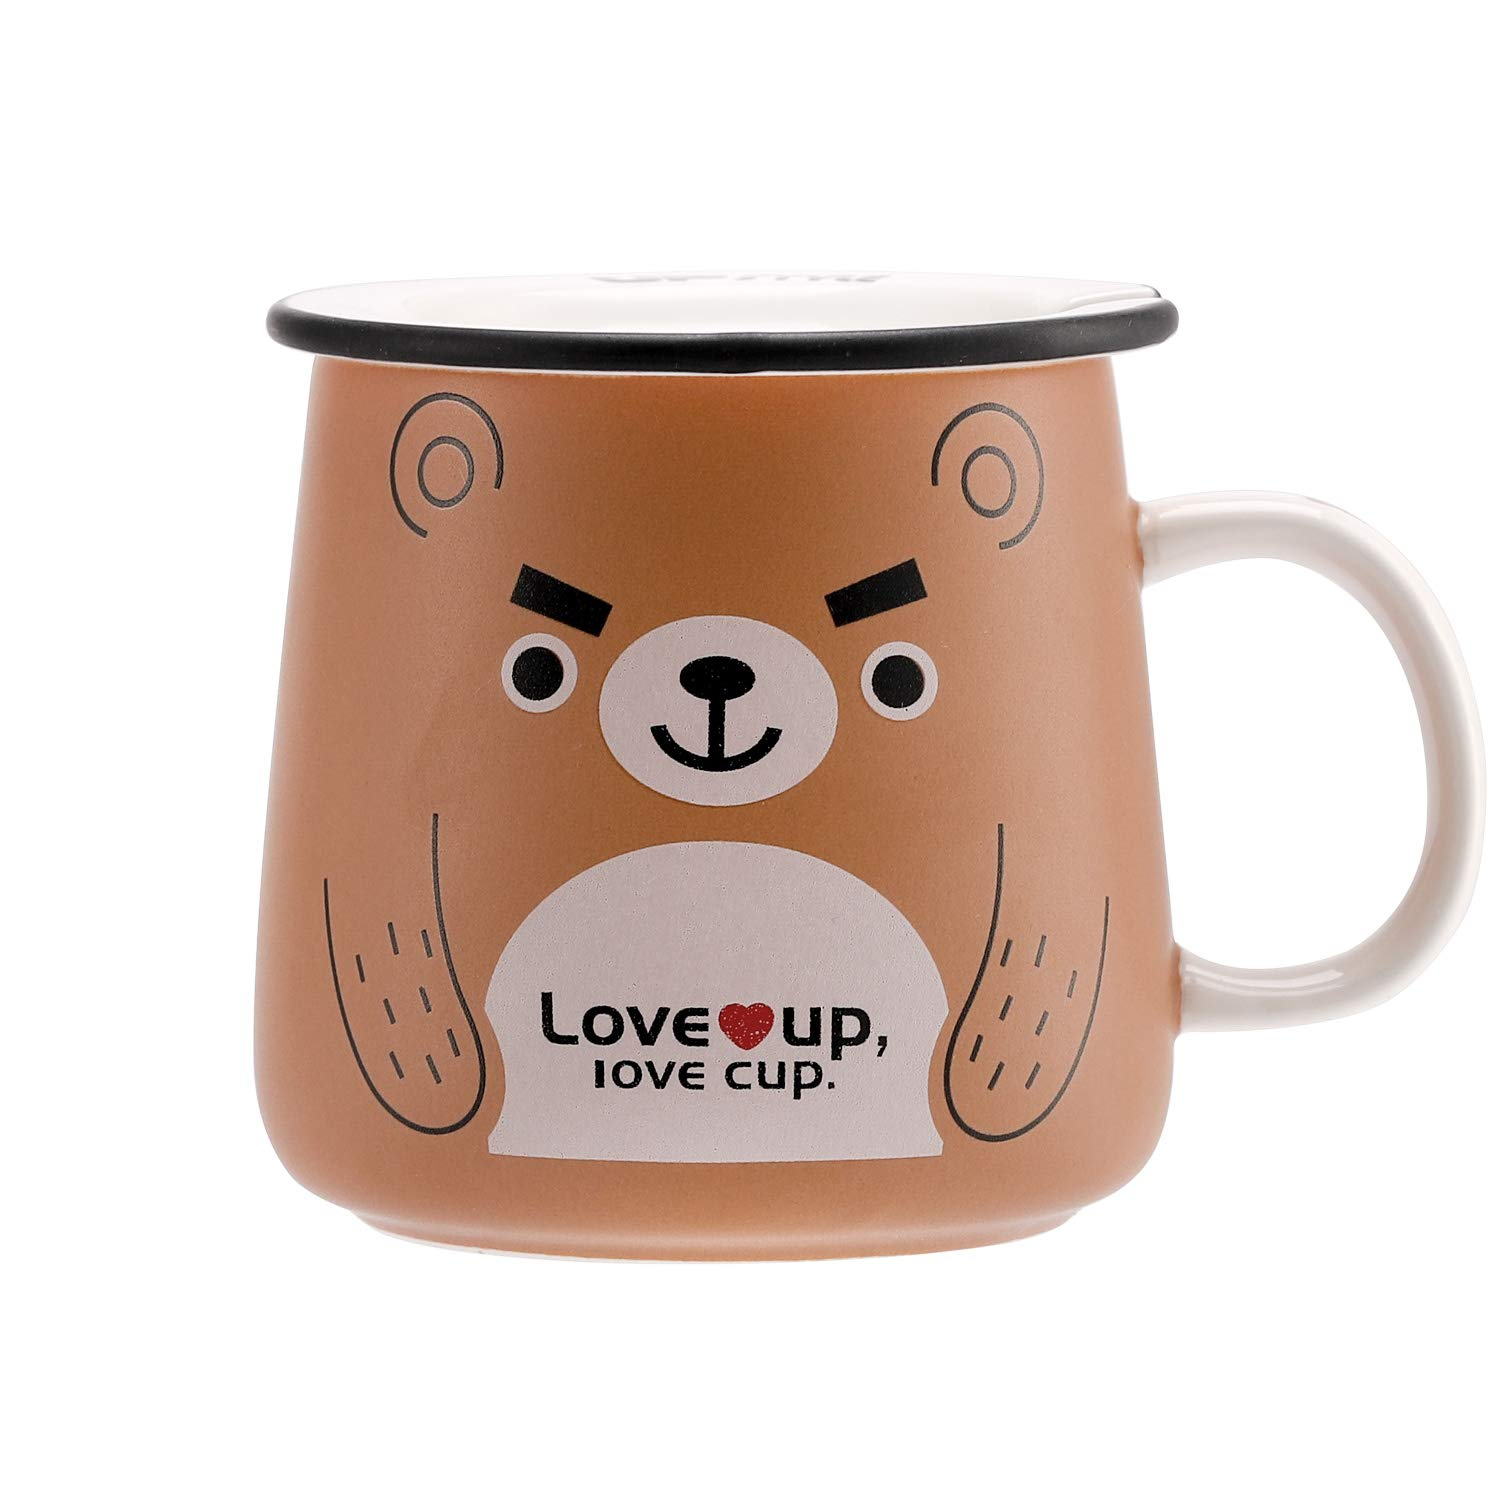 Upstyle Novelty Ceramic Coffee Mug Cute Funny Cartoon Animals Tumbler The Office Travel Tea Cup To Go With Lid And Spoon For Men And Wonmen 11oz 320ml Bear